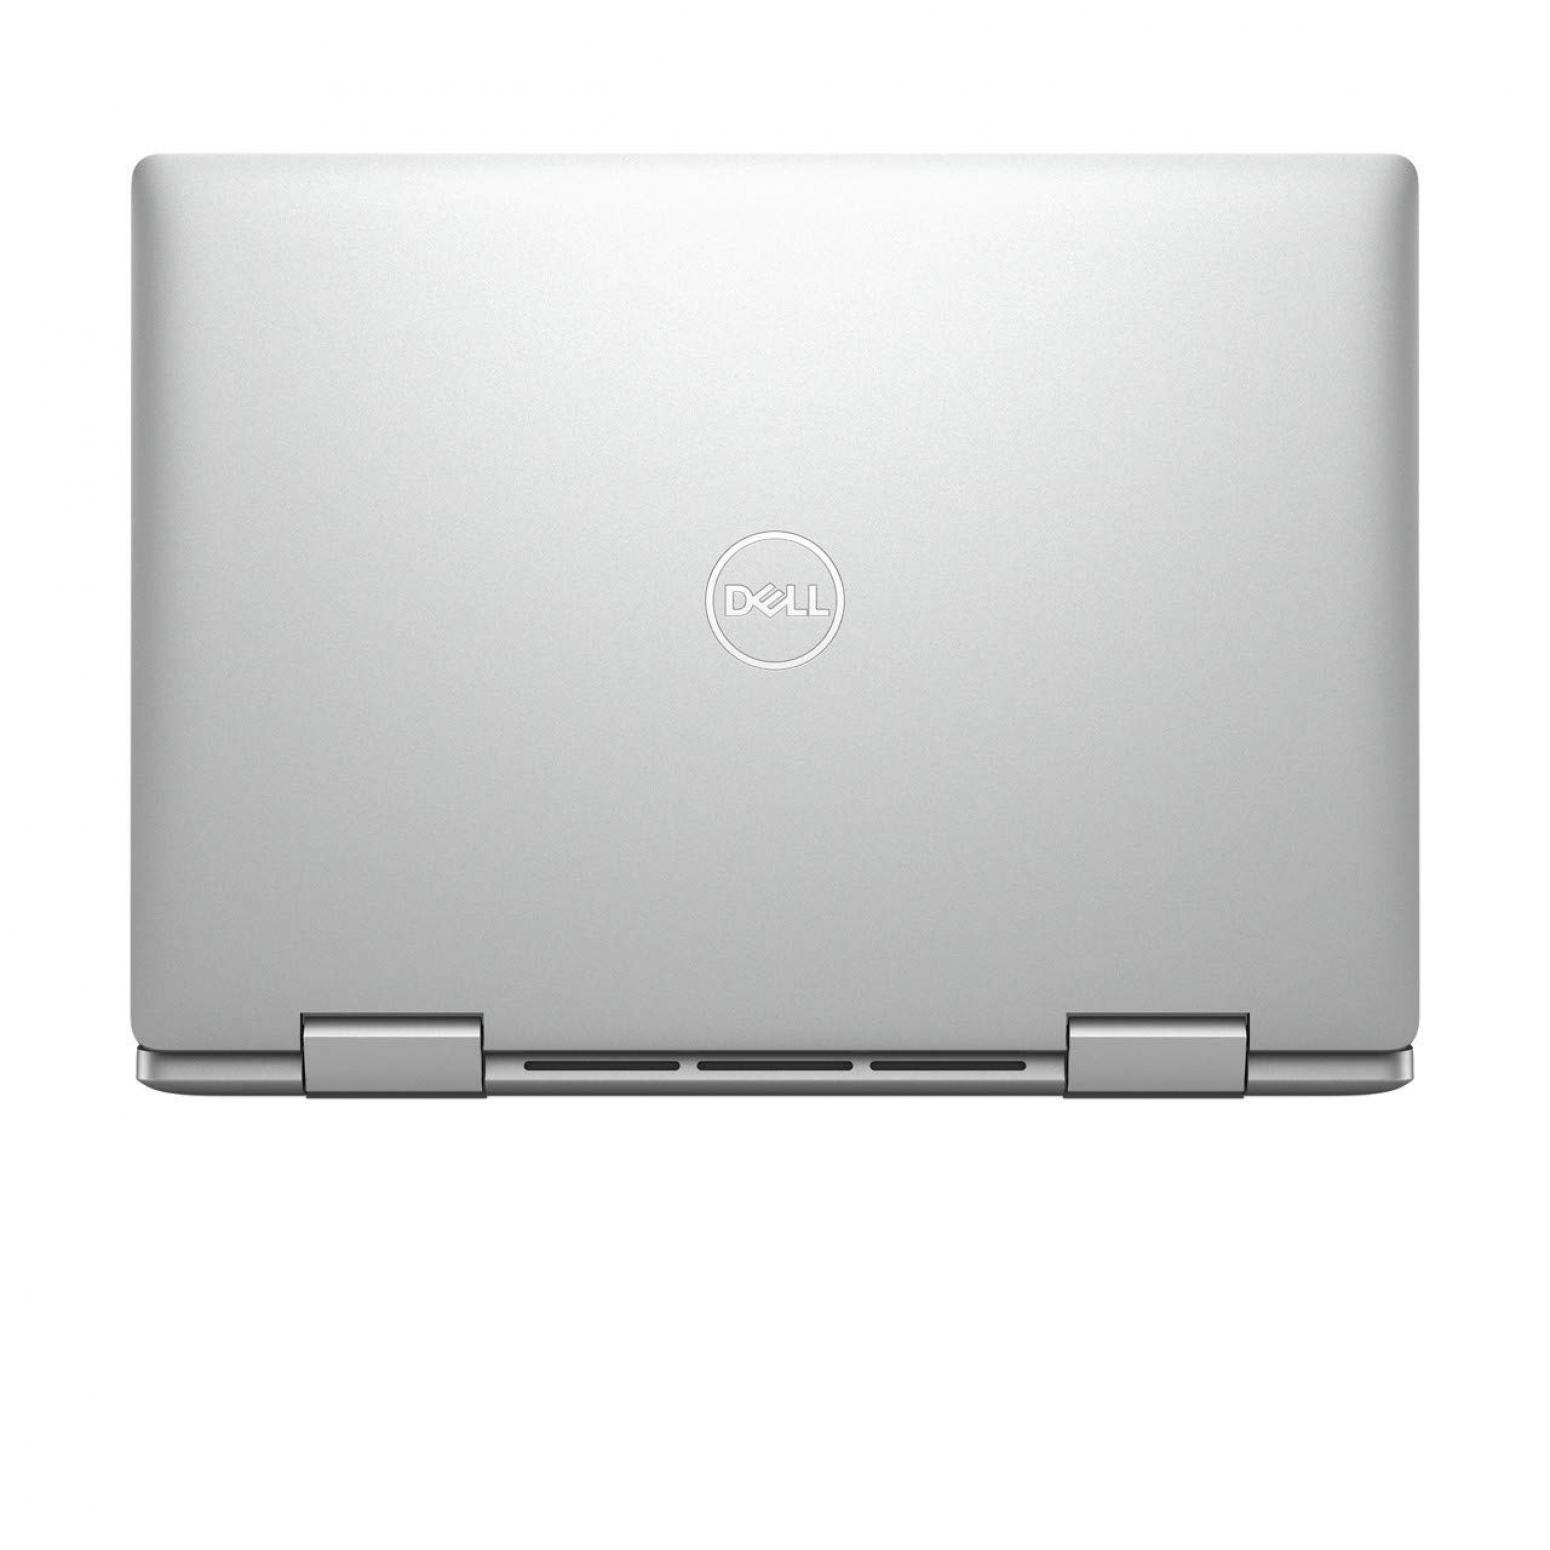 Ordinateur portable Dell Inspiron 14 5482 2-en-1 - SSD 256 Go, Core i3 Turbo Whiskey Lake - photo 4